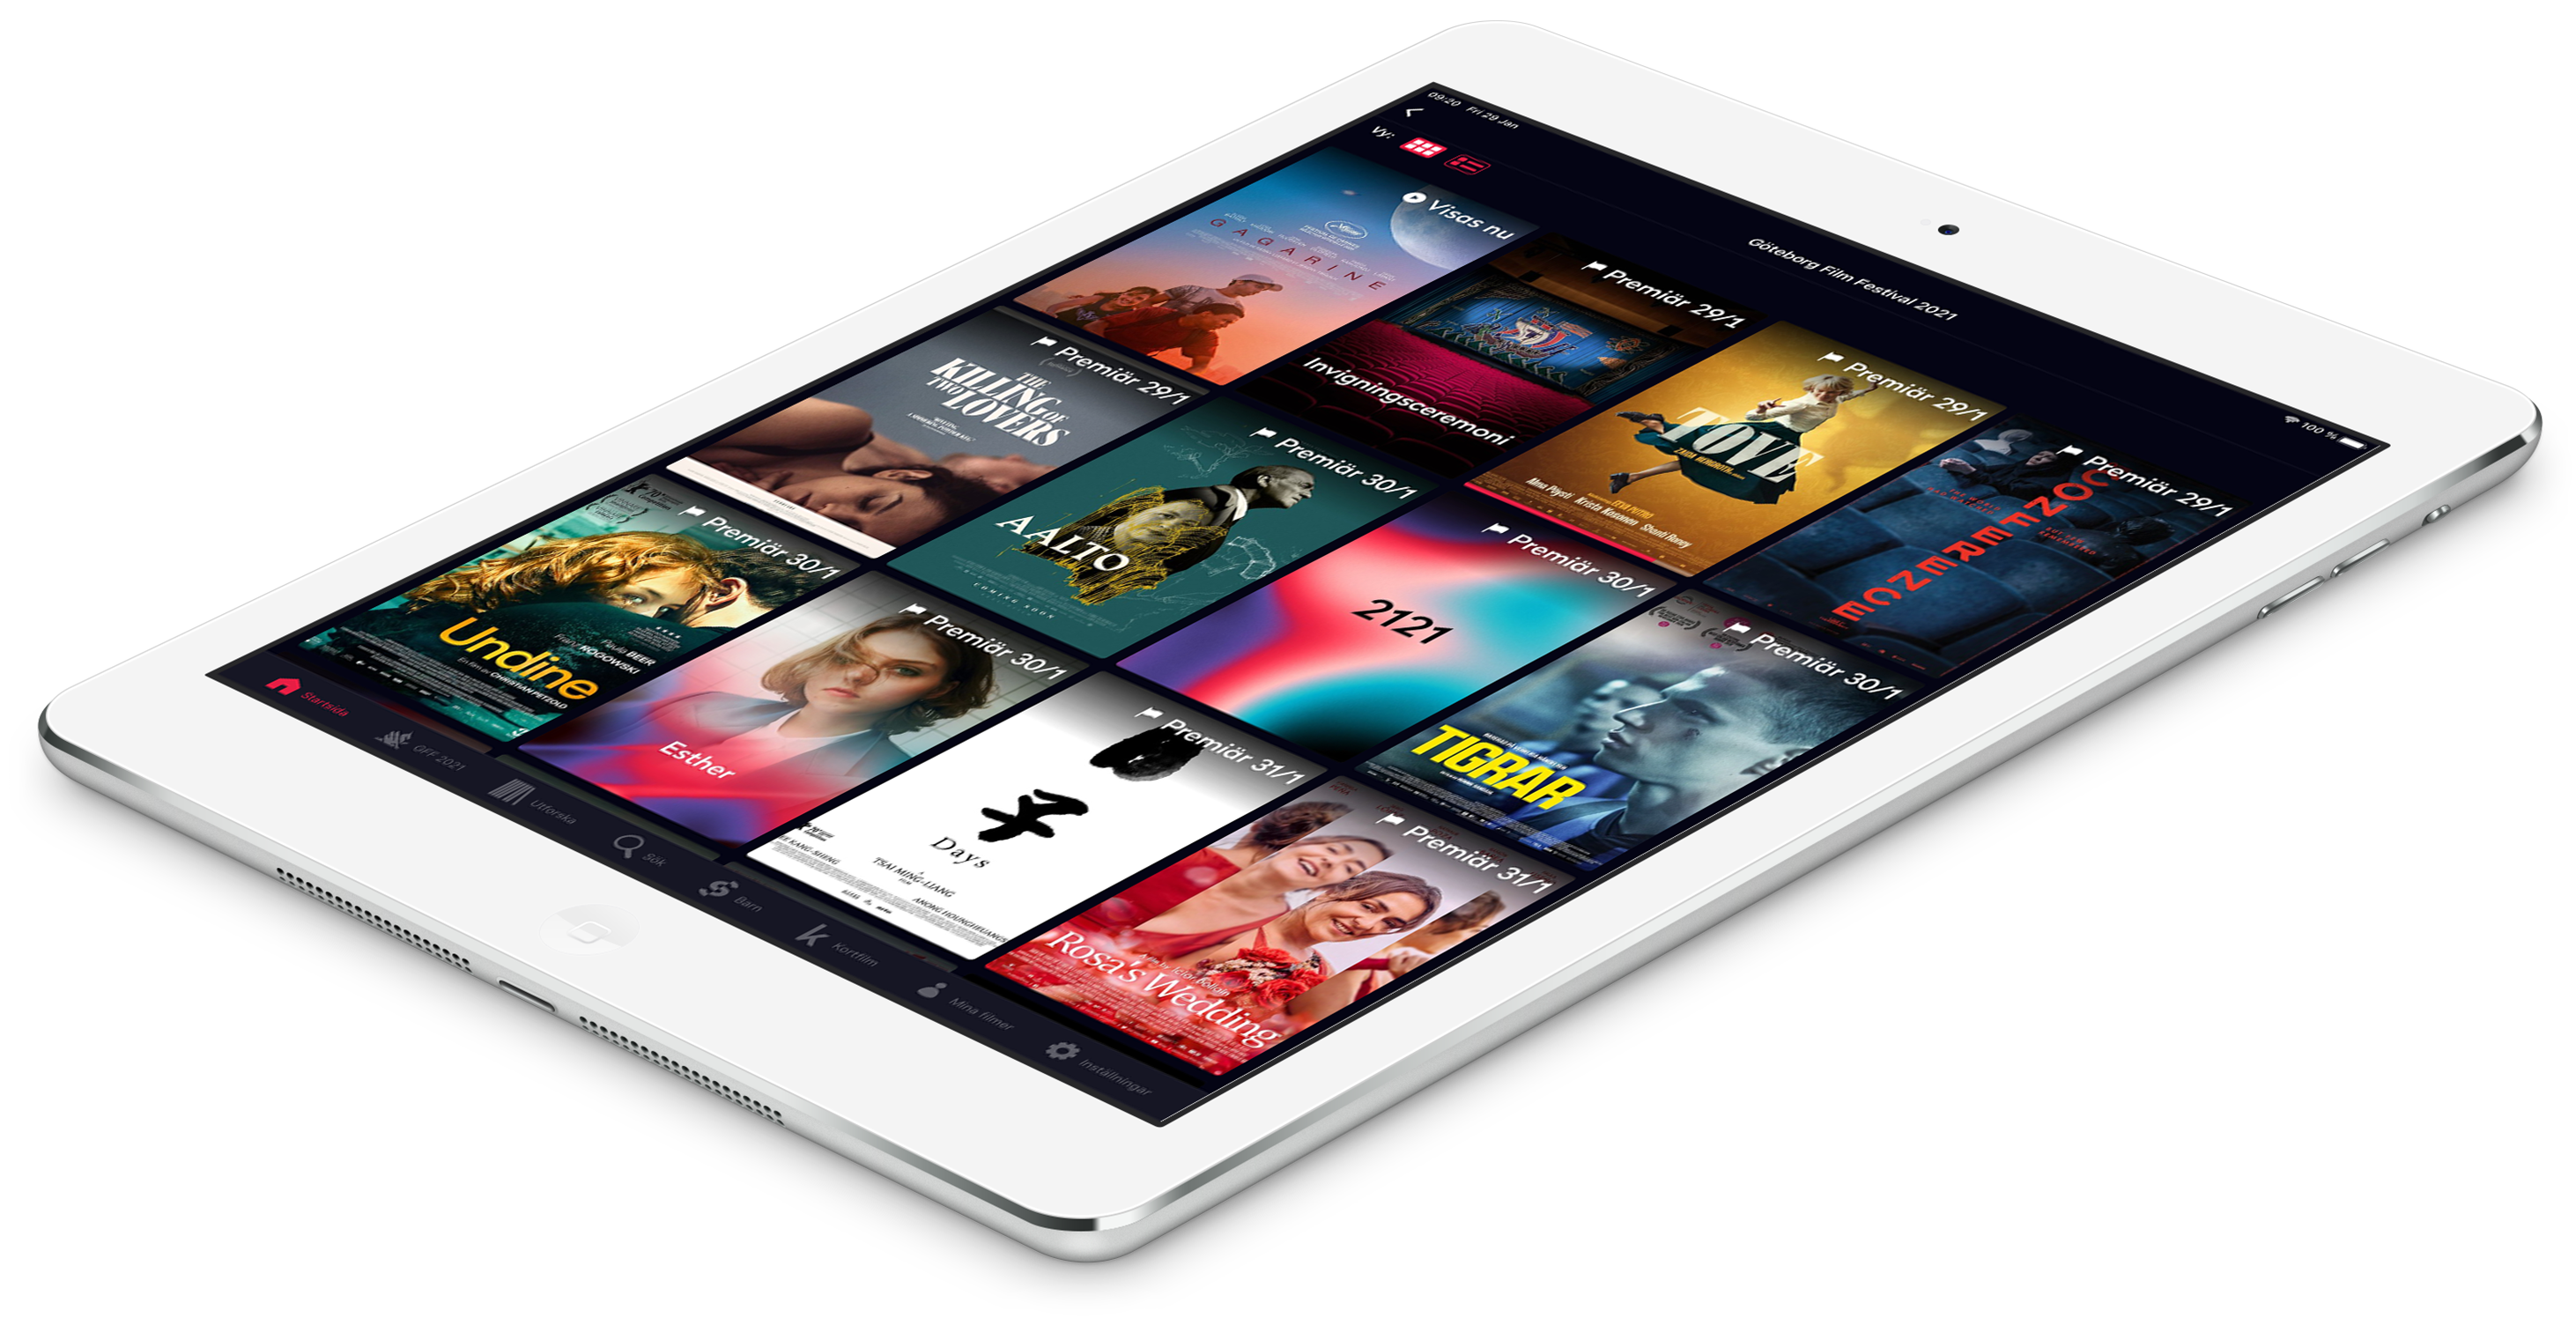 iPad-Air_gbg_filmfestival_new